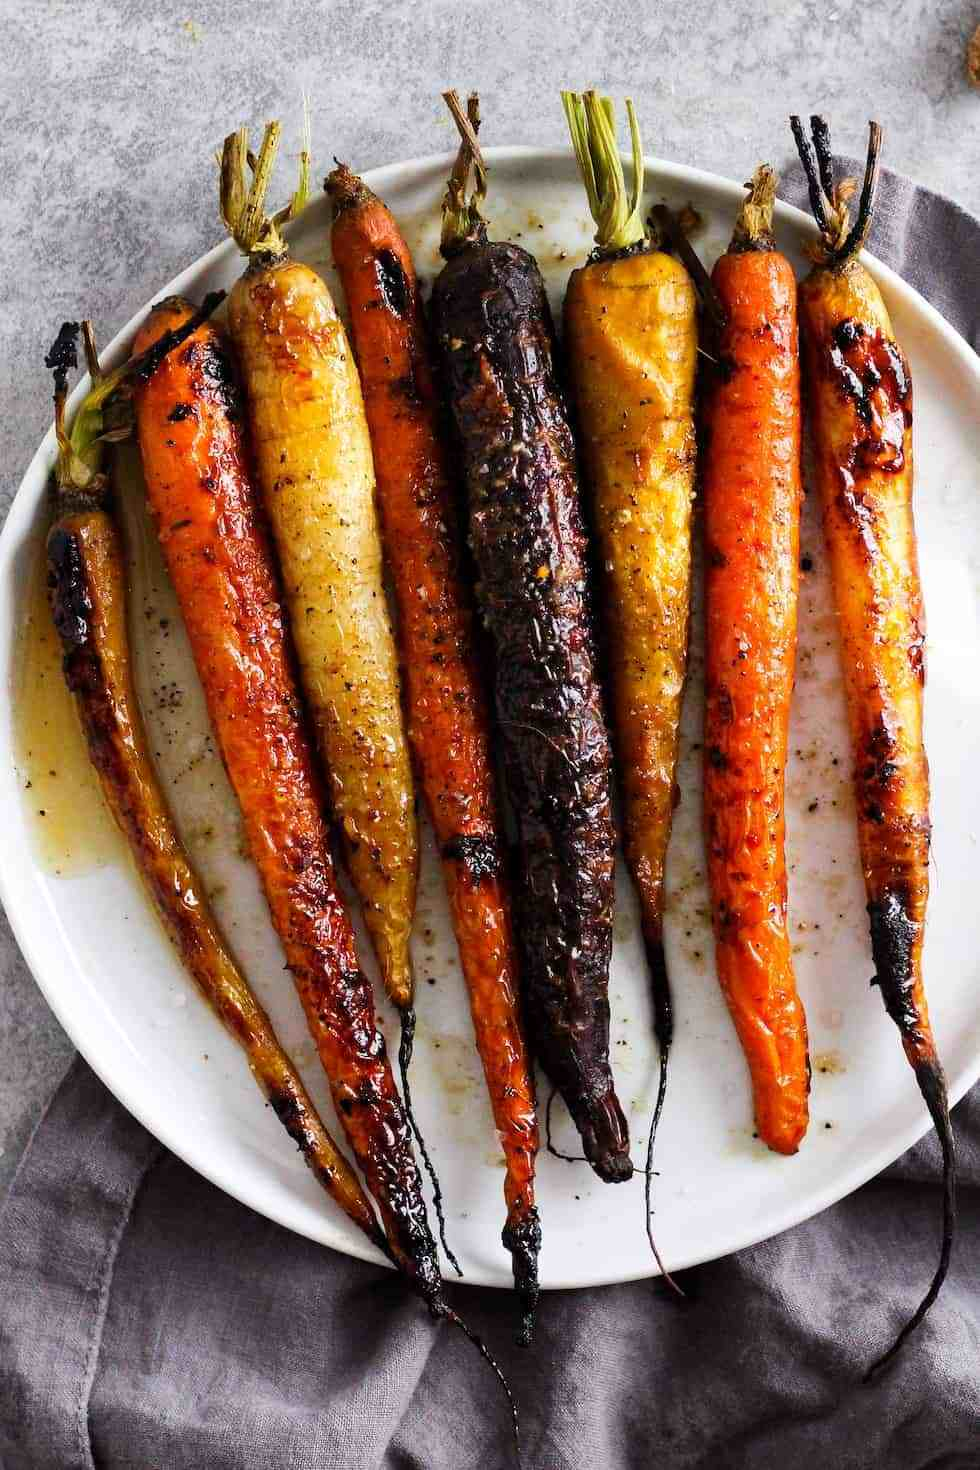 Roasted rainbow carrots on white plate. Choosing produce with a long shelf life is one of the best food waste solutions.